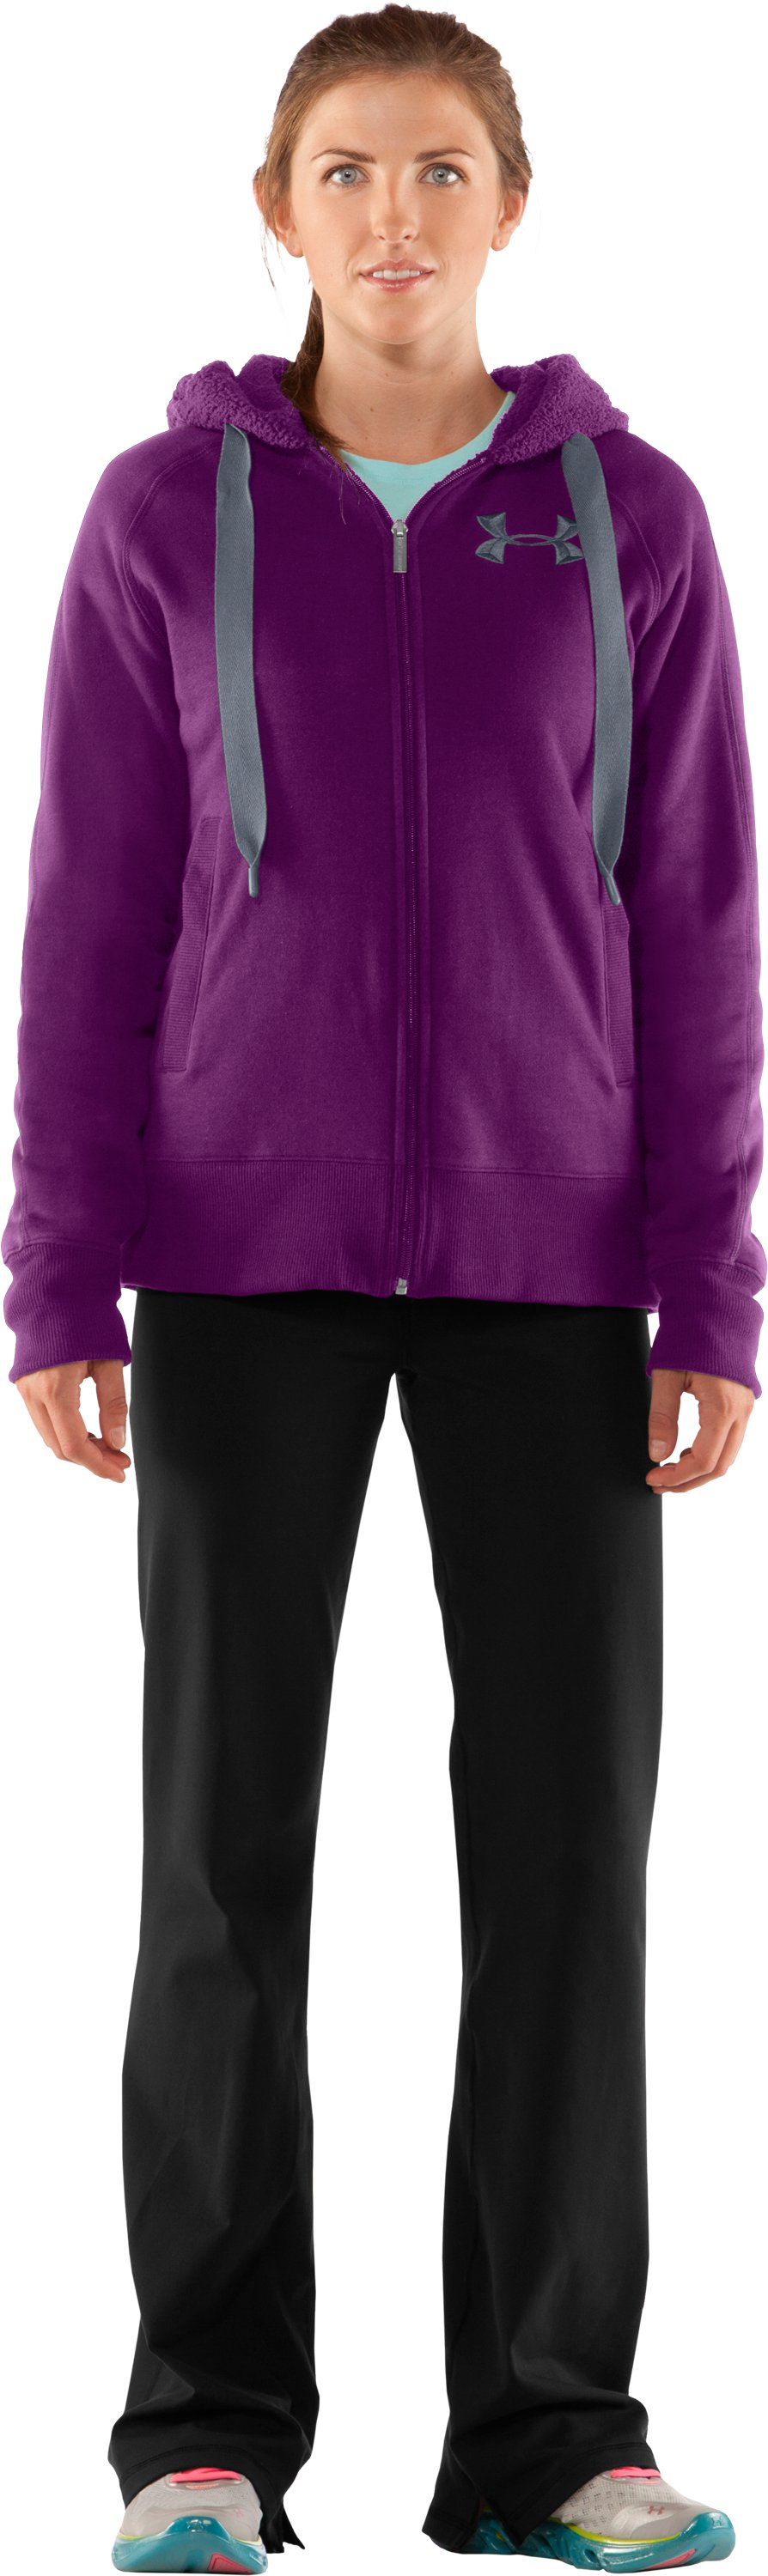 Women's Charged Cotton® Storm Sherpa Full Zip Hoodie, Cassis, zoomed image